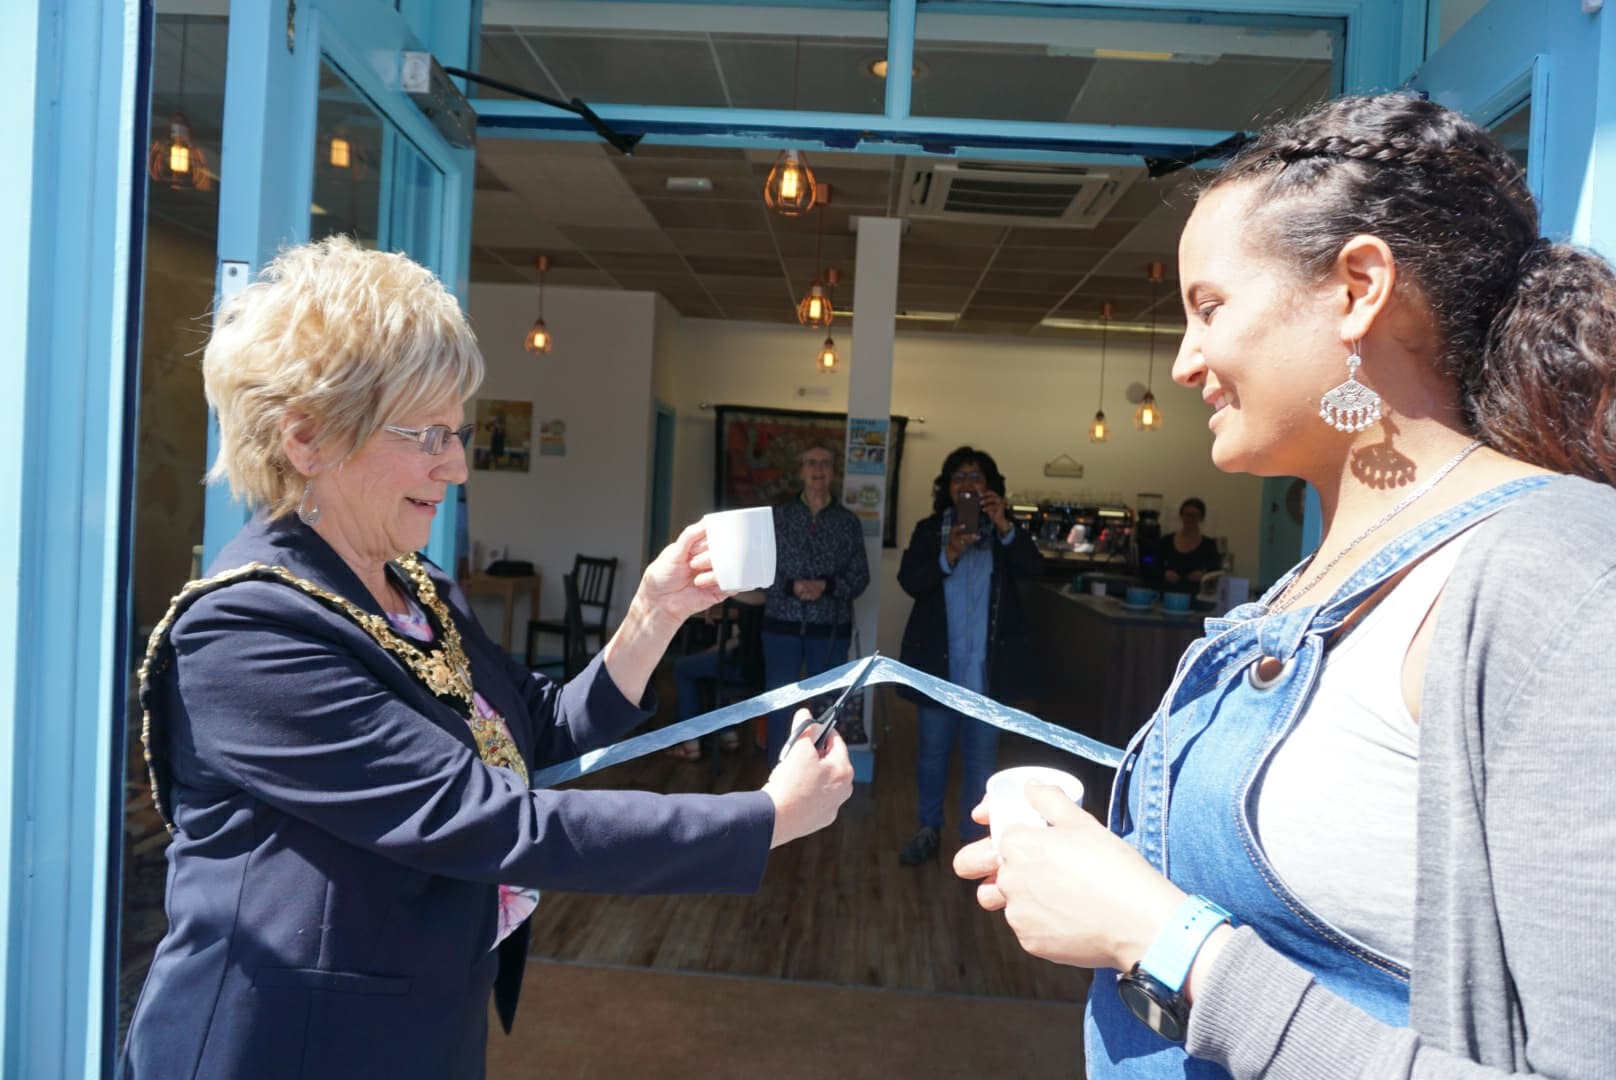 Northwich mayor Cllr Janet Myerscough-Illidge cutting the ribbon with Abda Obeid-Findley